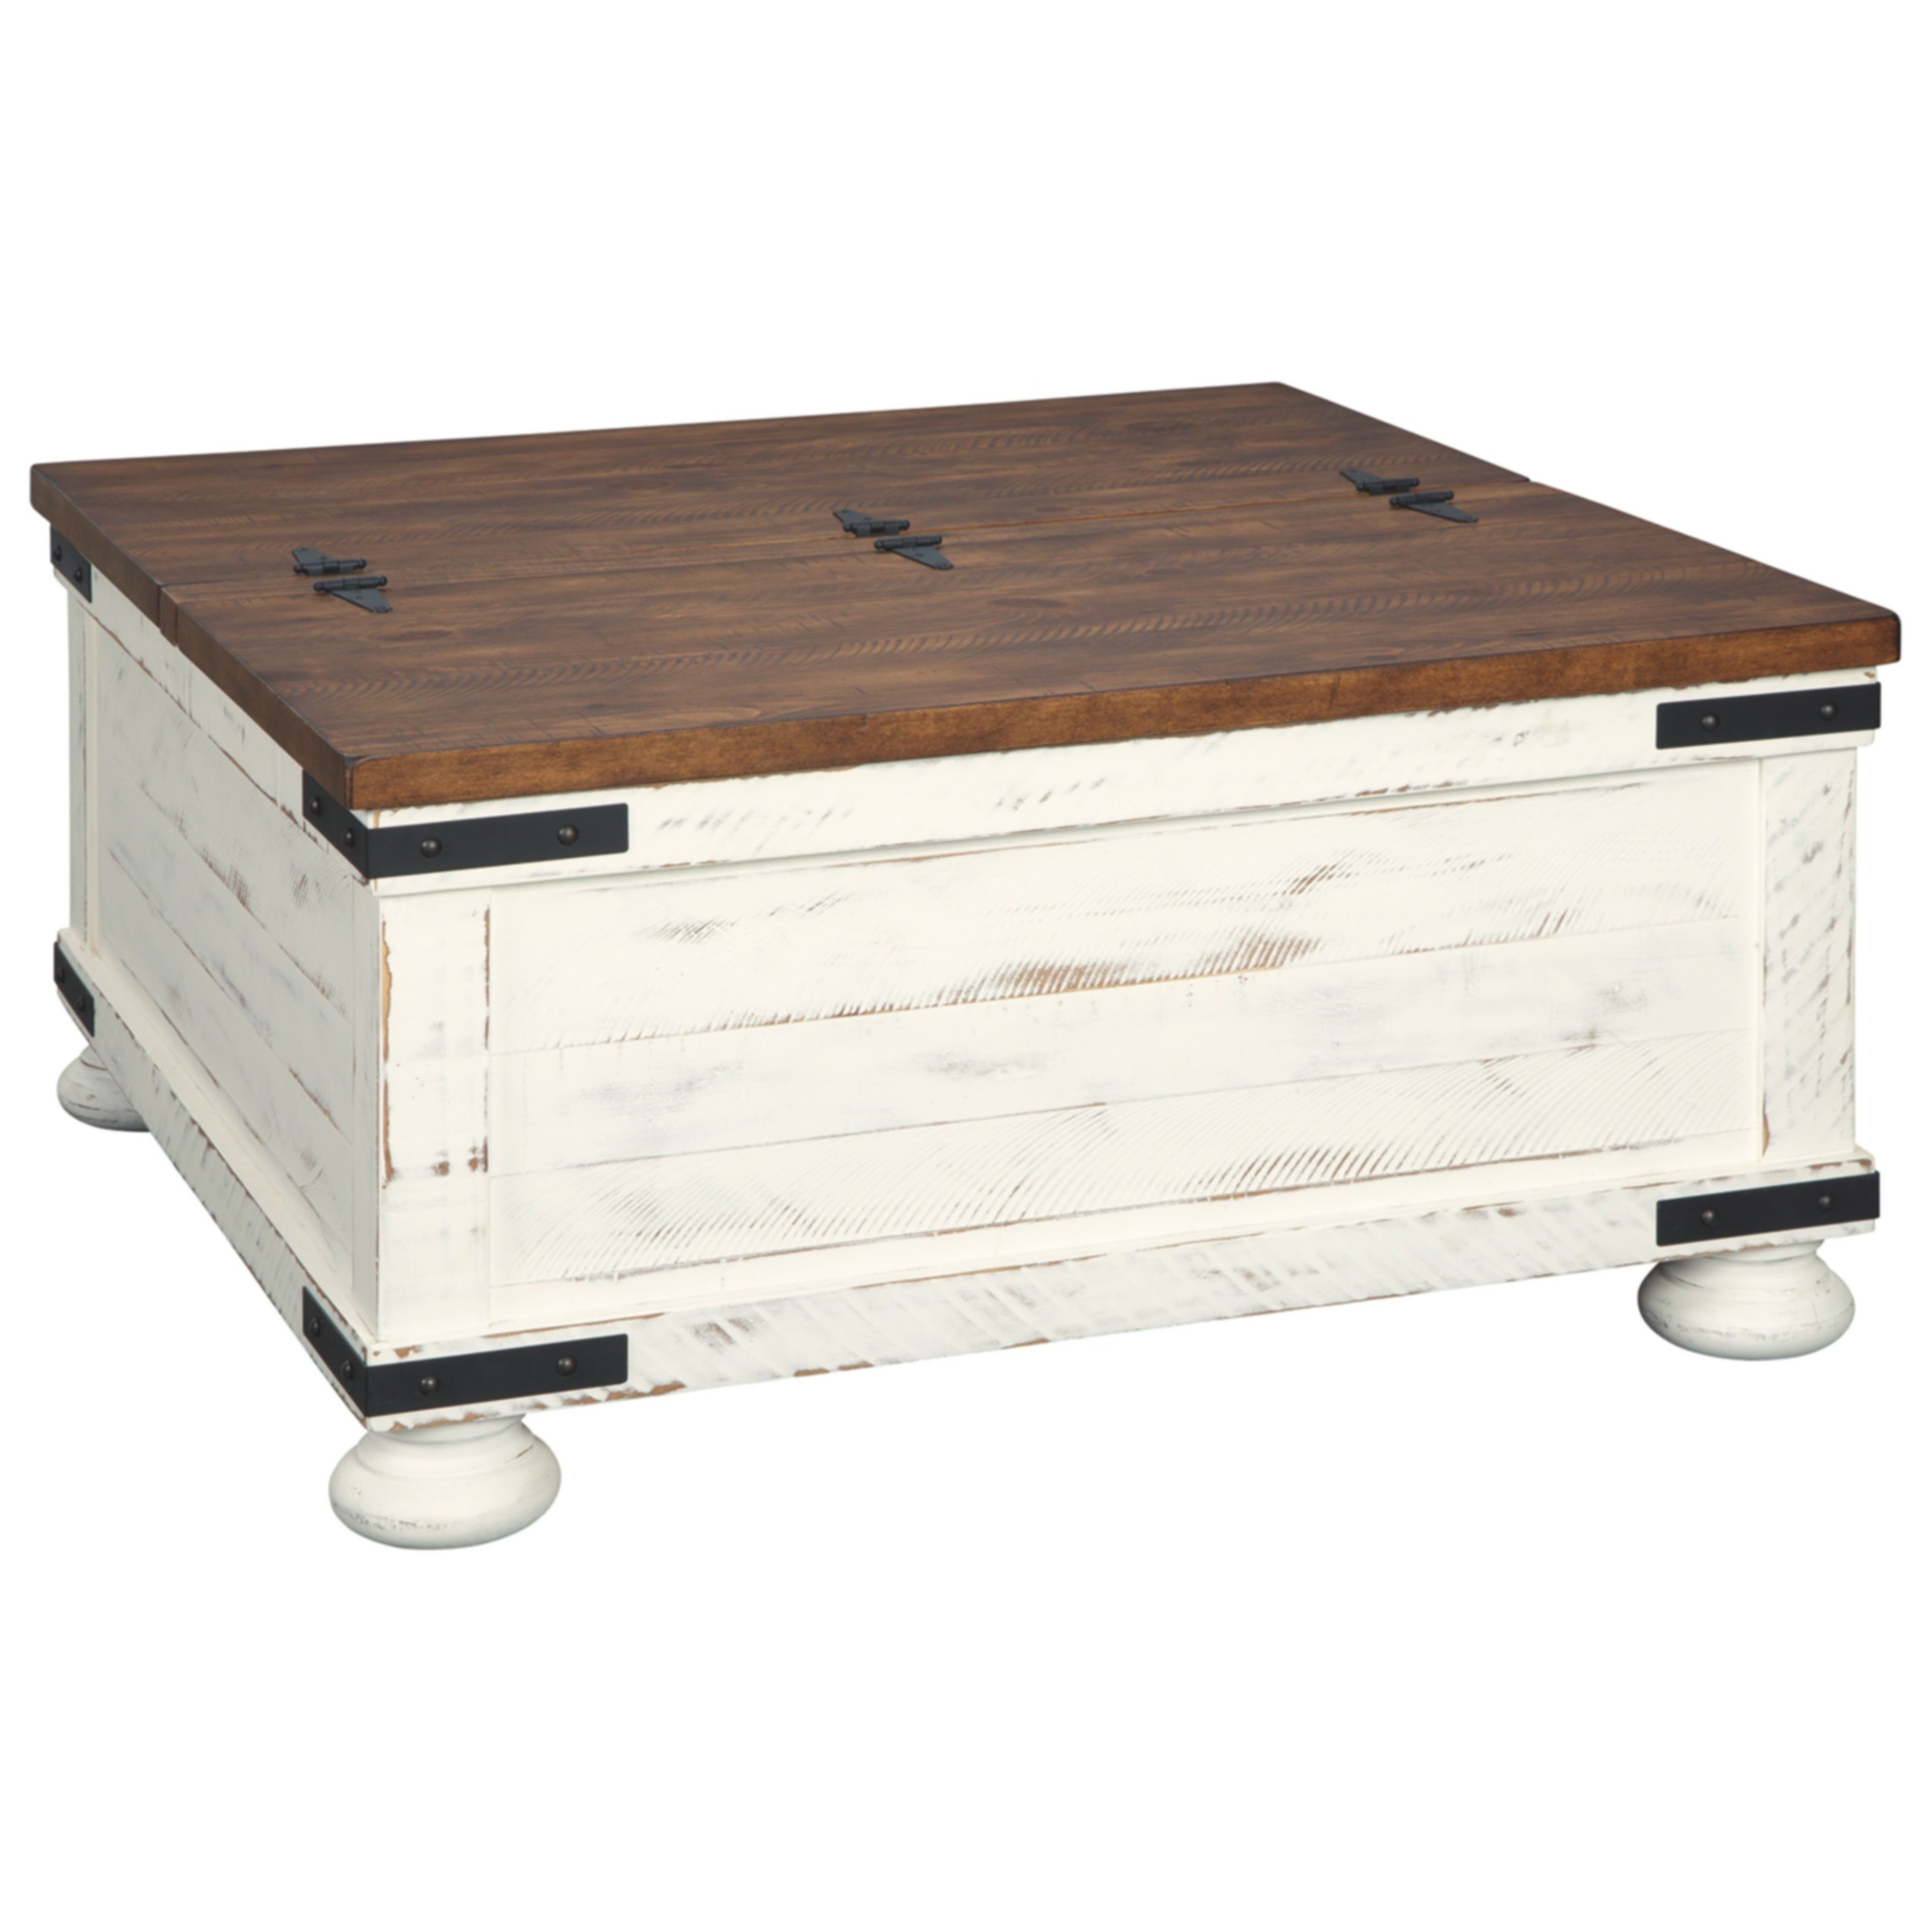 Signature Design By Ashley Wystfield White And Brown Wood Farmhouse Style Coffee Table On Sale Overstock 26281059